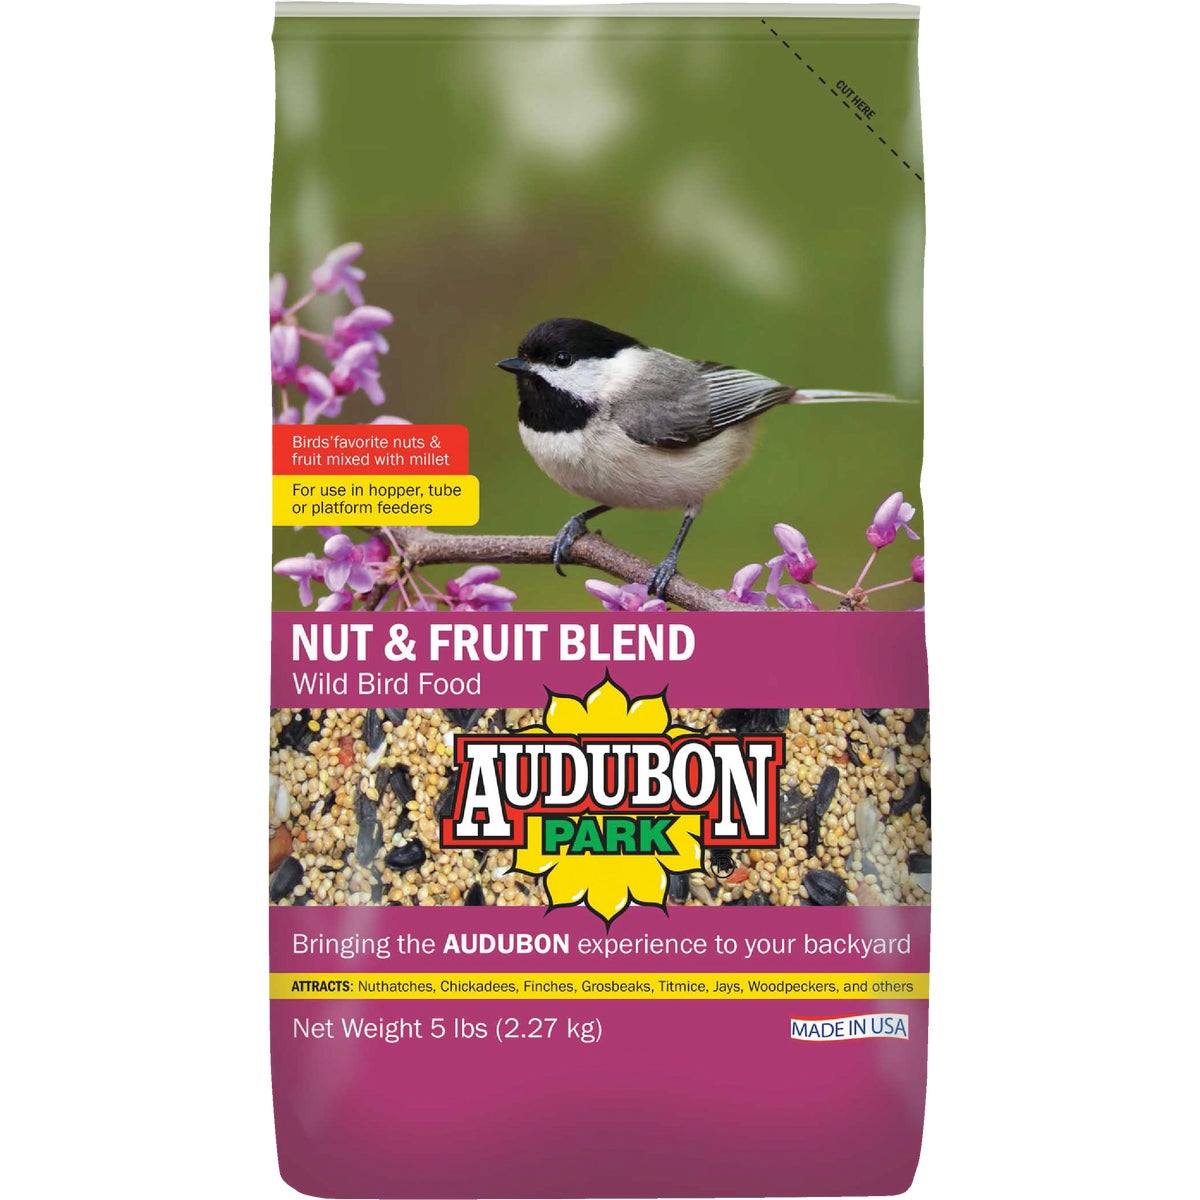 NUT & FRUIT BLEND 7LB - 1022210 by Scotts Songbird